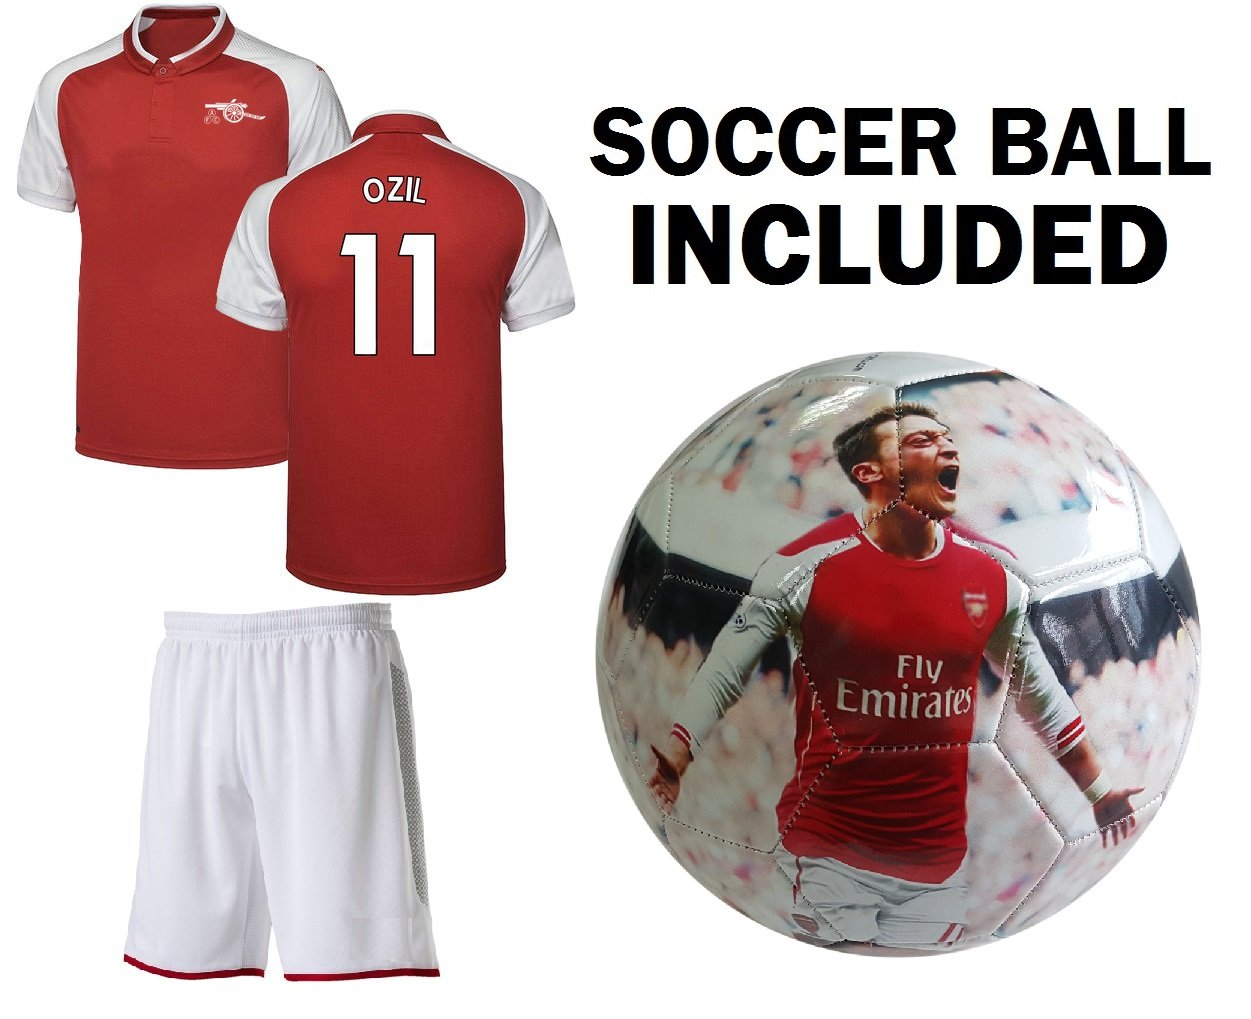 ec095a28d A.F.C  11 OZIL jersey Youth  11 Kids Soccer Jersey + Shorts + Ball Premium  Gift Set✓ Mesut Ozil  11 Soccer Ball Size 5 Football jersey kit Futbal  Great ...